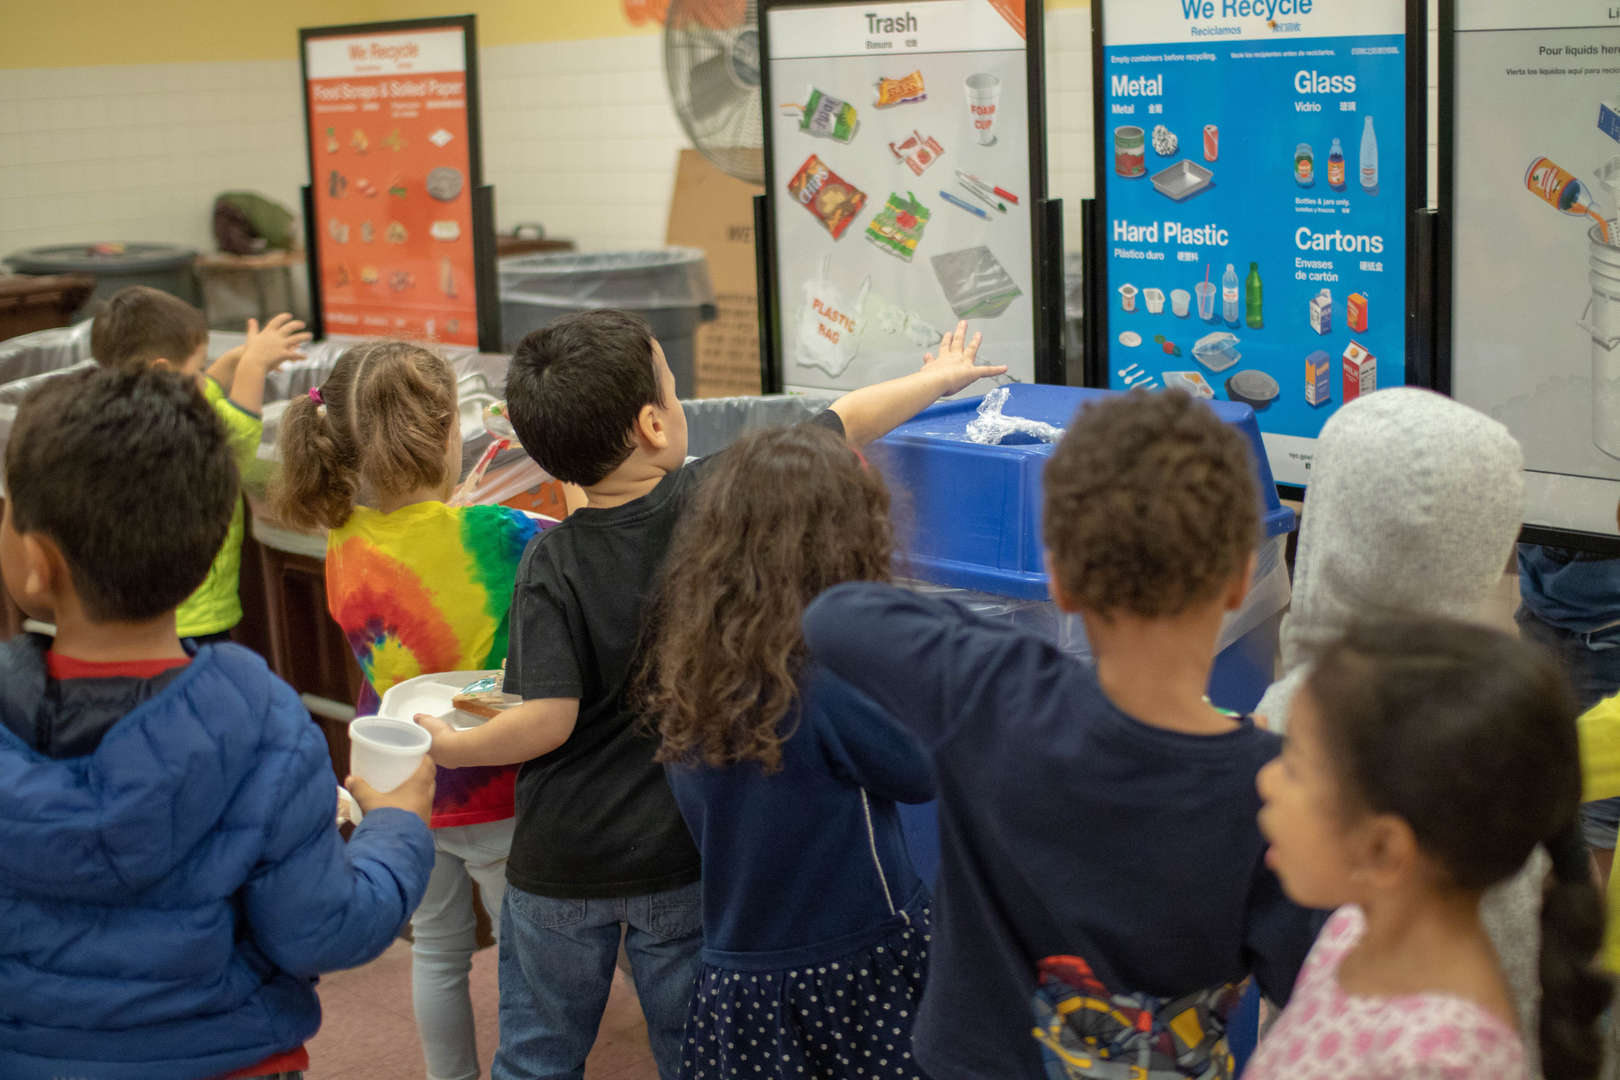 Children Sorting Their Lunch Garbage in Trash, Recycle Bin, and Compost Bin